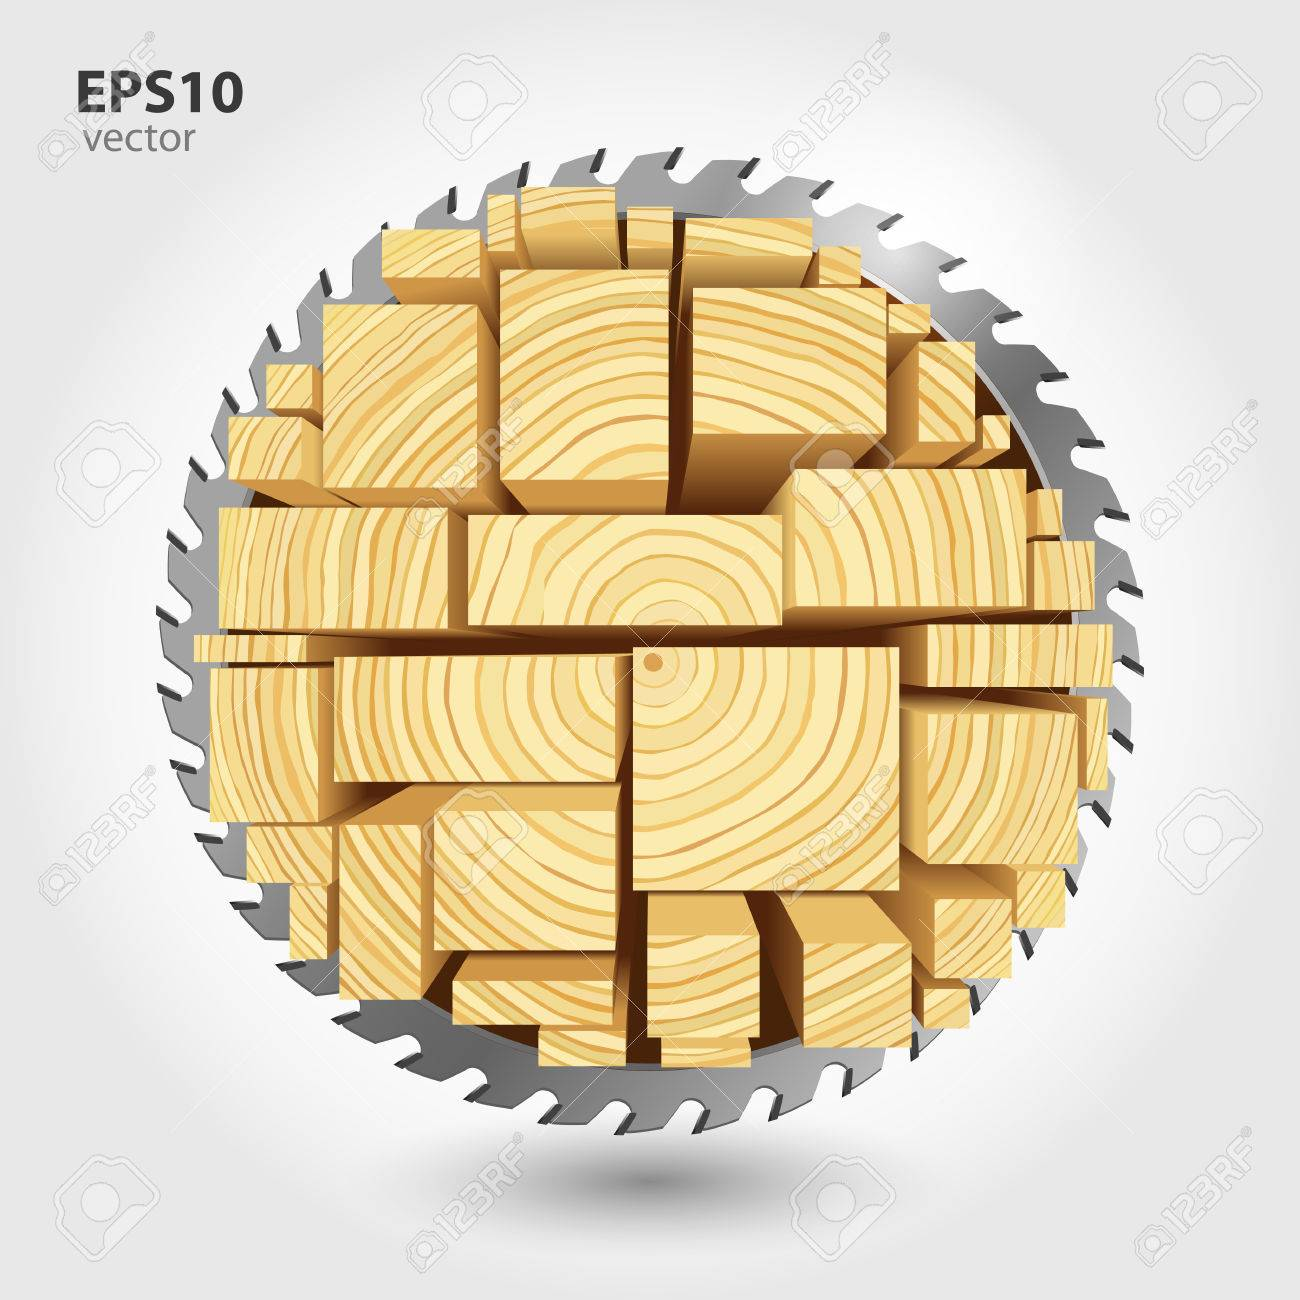 Lumber and wood slice illustration concept. Abstract creative saw. Sawmill color hd 3d web icon. Woodworking - 50570468